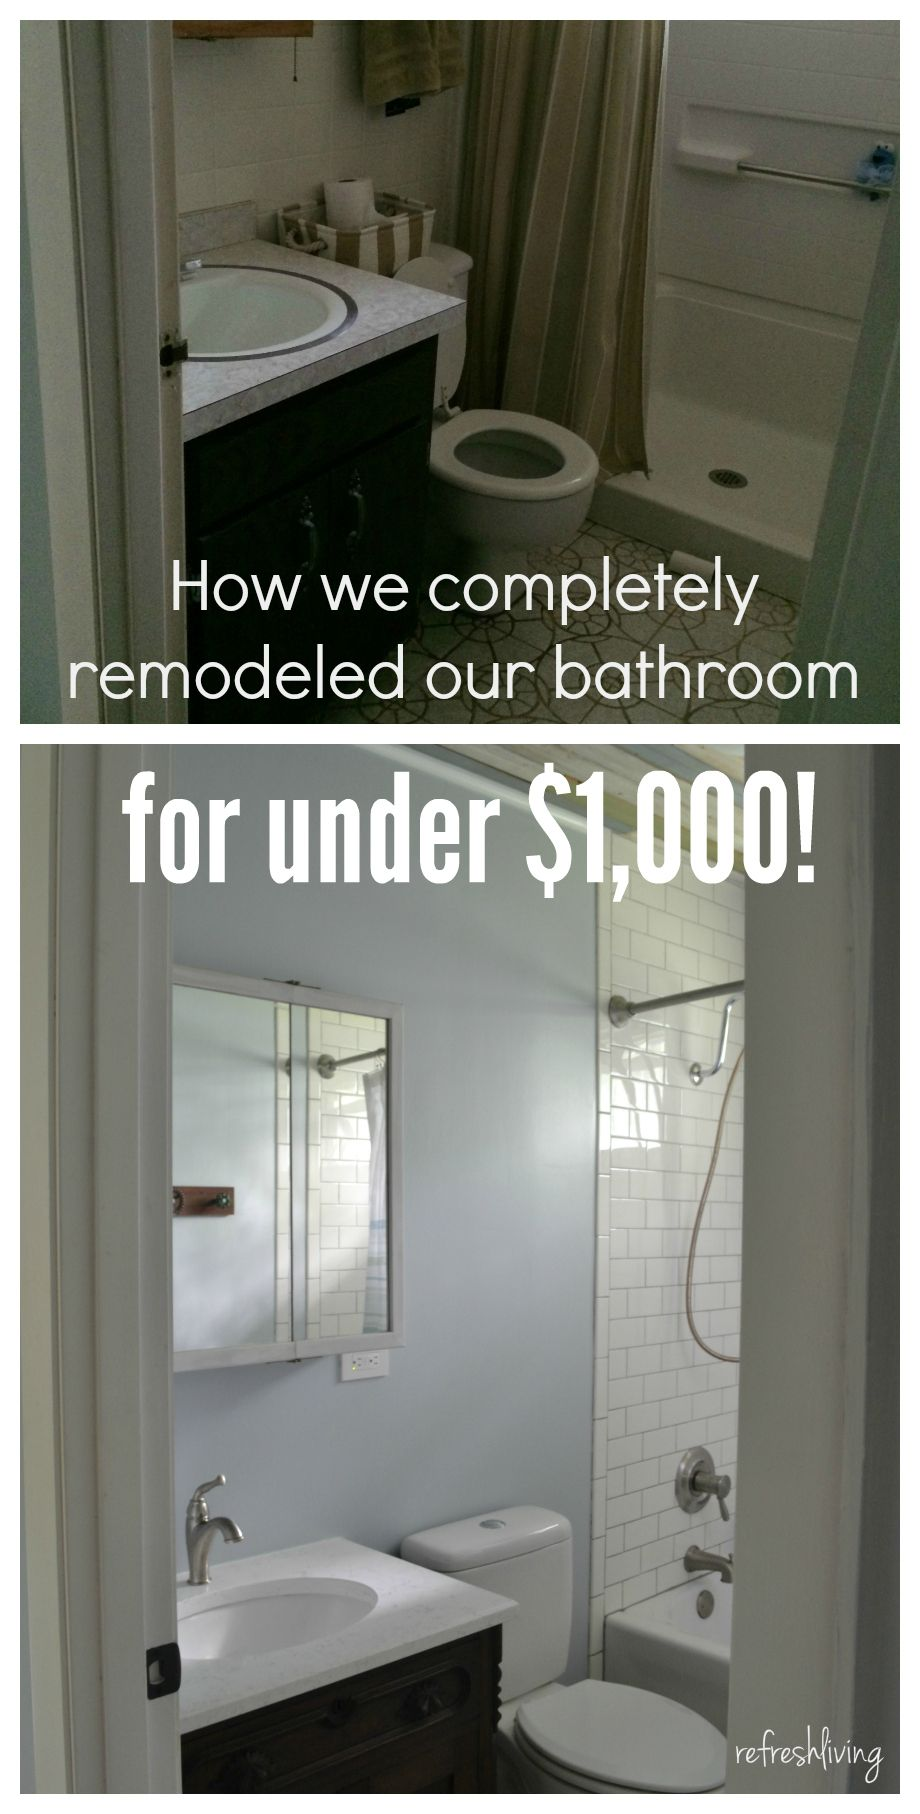 bathroom remodel on a budget with reclaimed materials decor bath